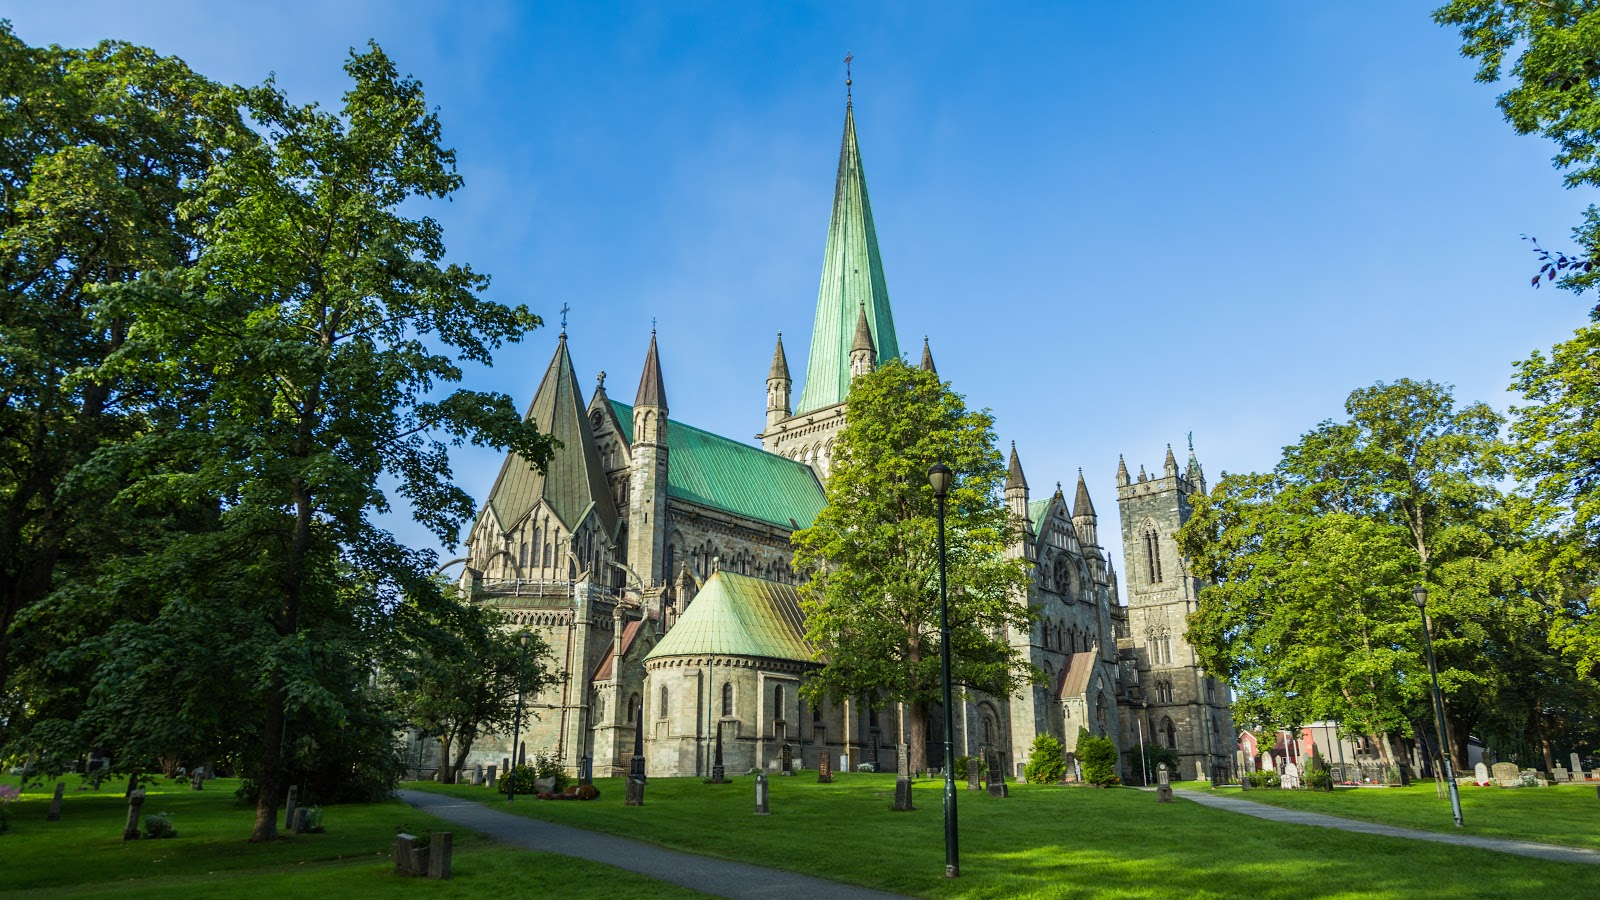 Summertime at Nidaros Cathedral in Trondheim, Norway. Photo: Fotoknoff.no. Unauthorized use is prohibited.